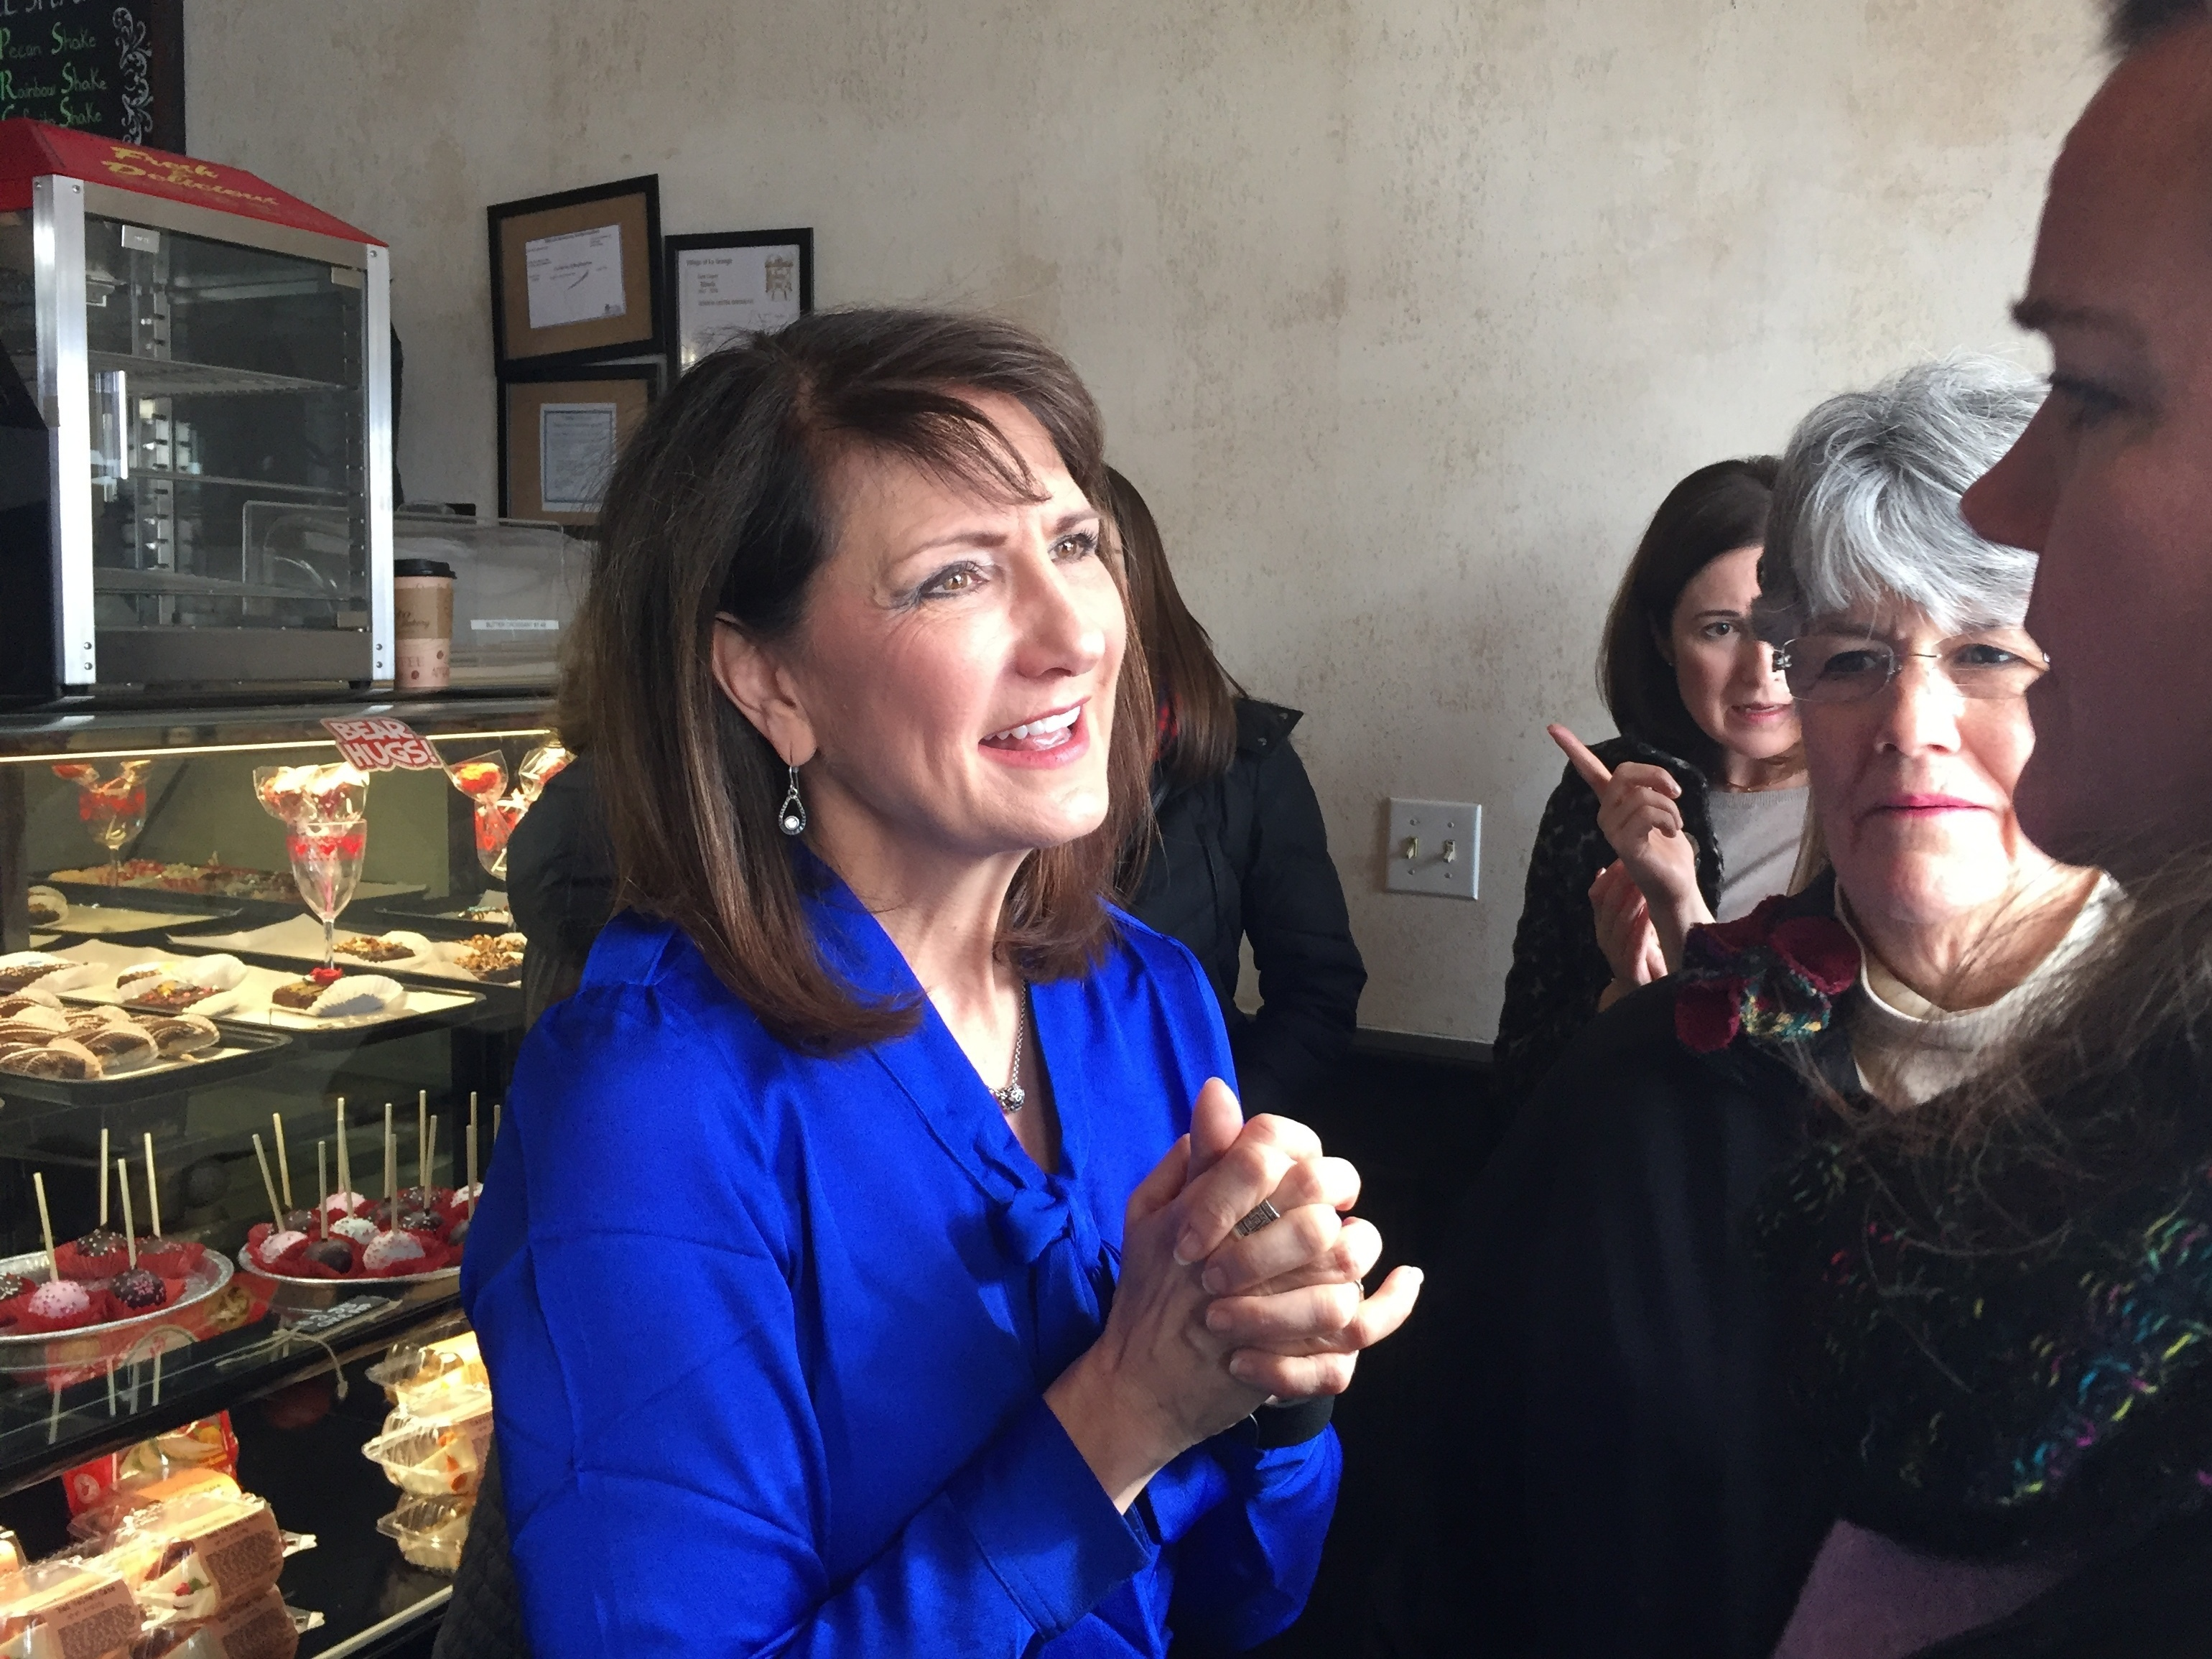 Democratic candidate Marie Newman speaks with supporters at a campaign event in Illinois's 3rd Congressional District. Newman is a political newcomer challenging Rep. Dan Lipinski in the March 20 primary. (Sara Burnett/AP)